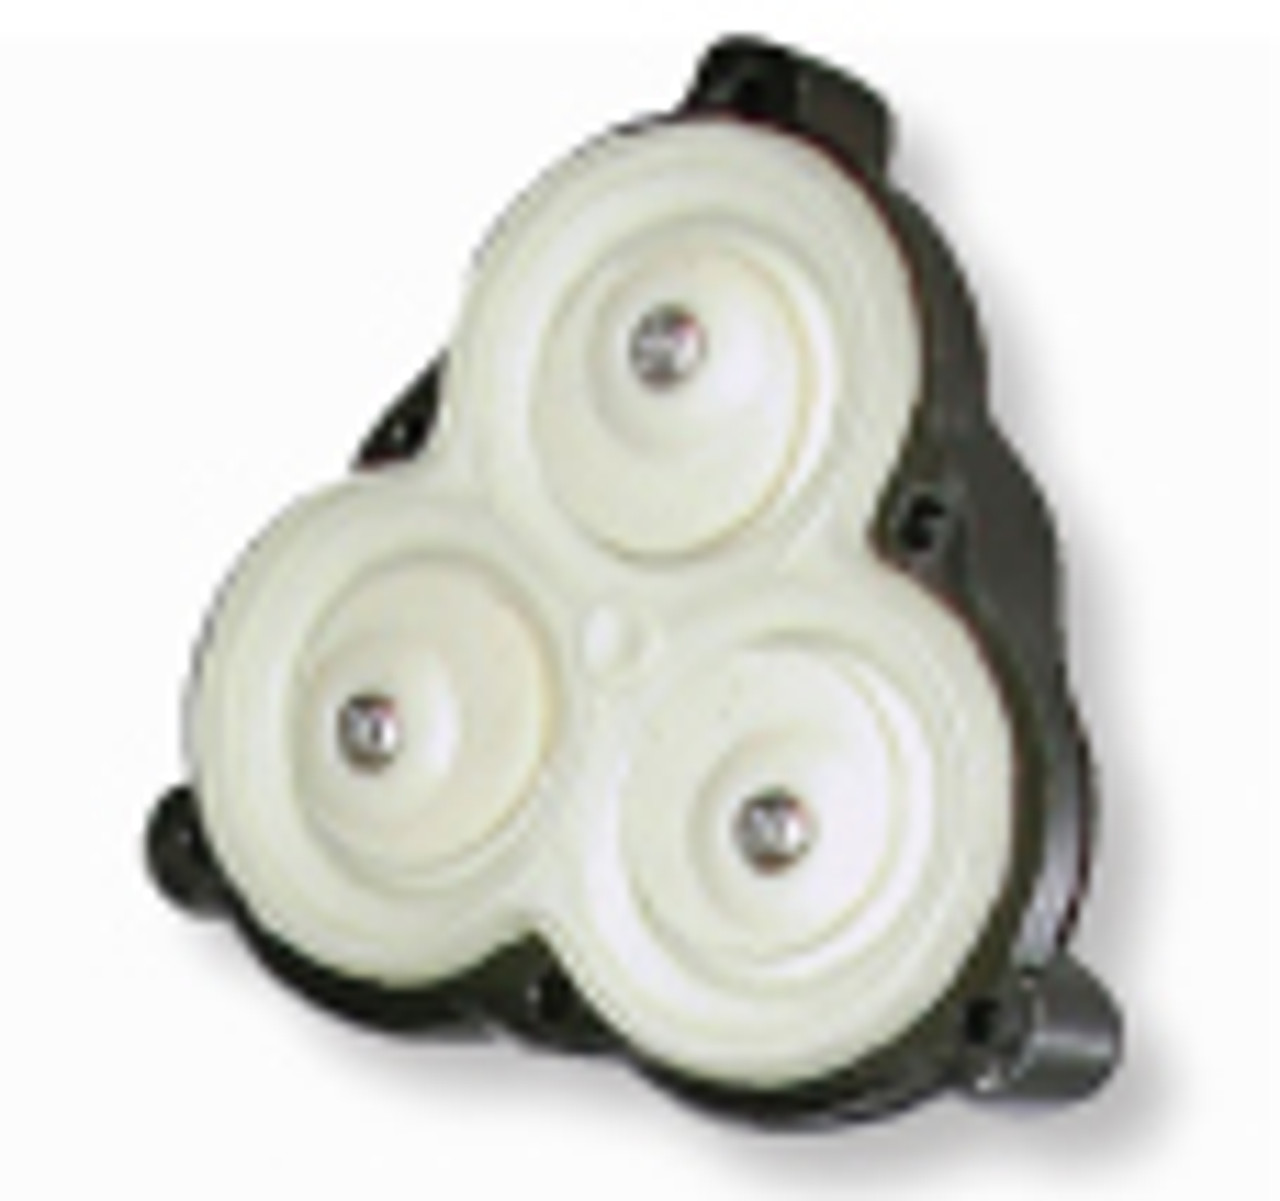 SHURFLO 2088 Series Diaphragm